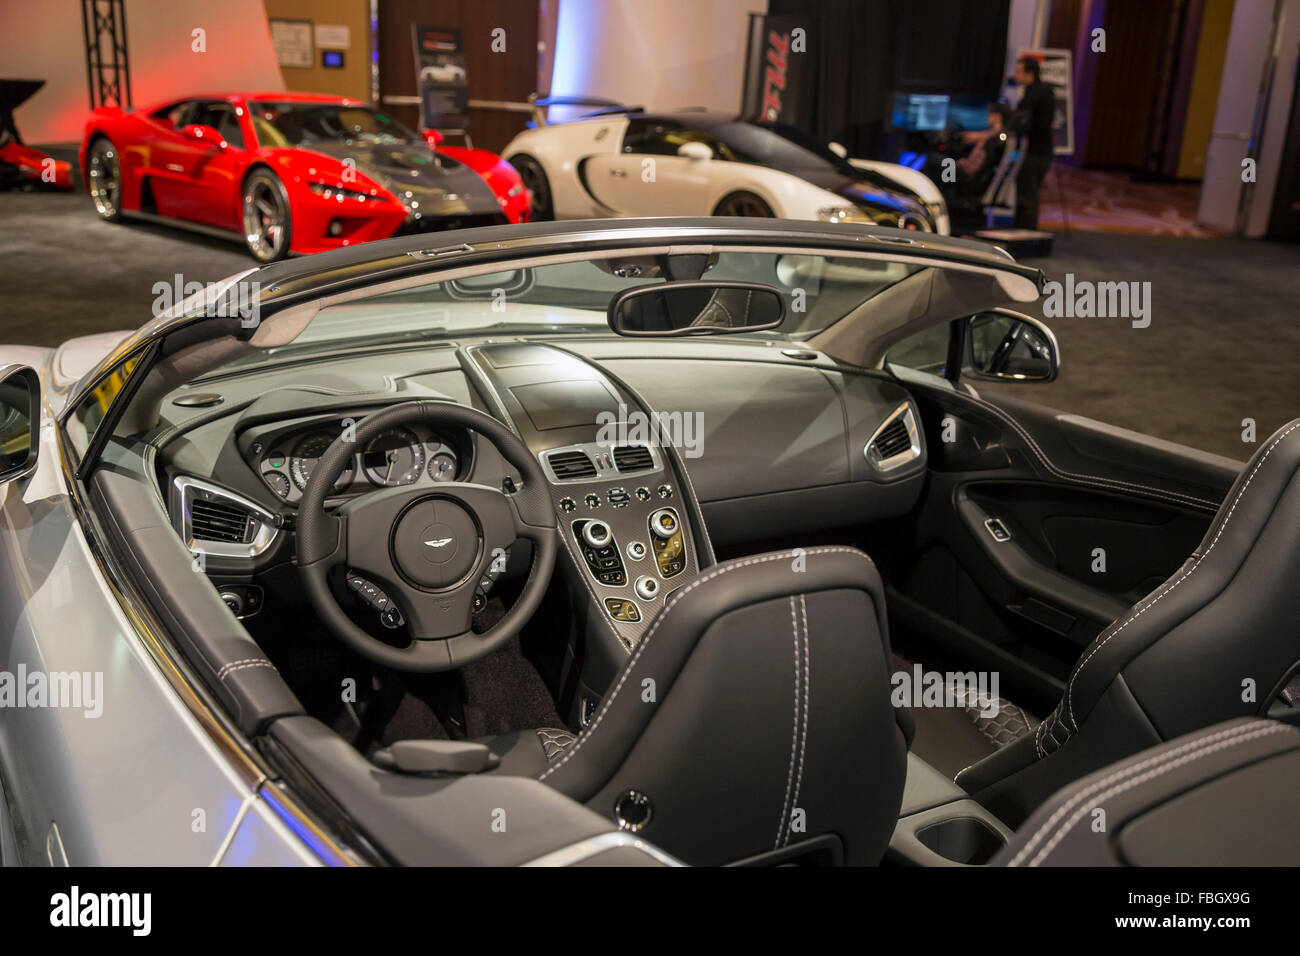 Detroit, Michigan - The Aston Martin Vanquish in a collection of ultra-luxury cars on display during the Detroit - Stock Image